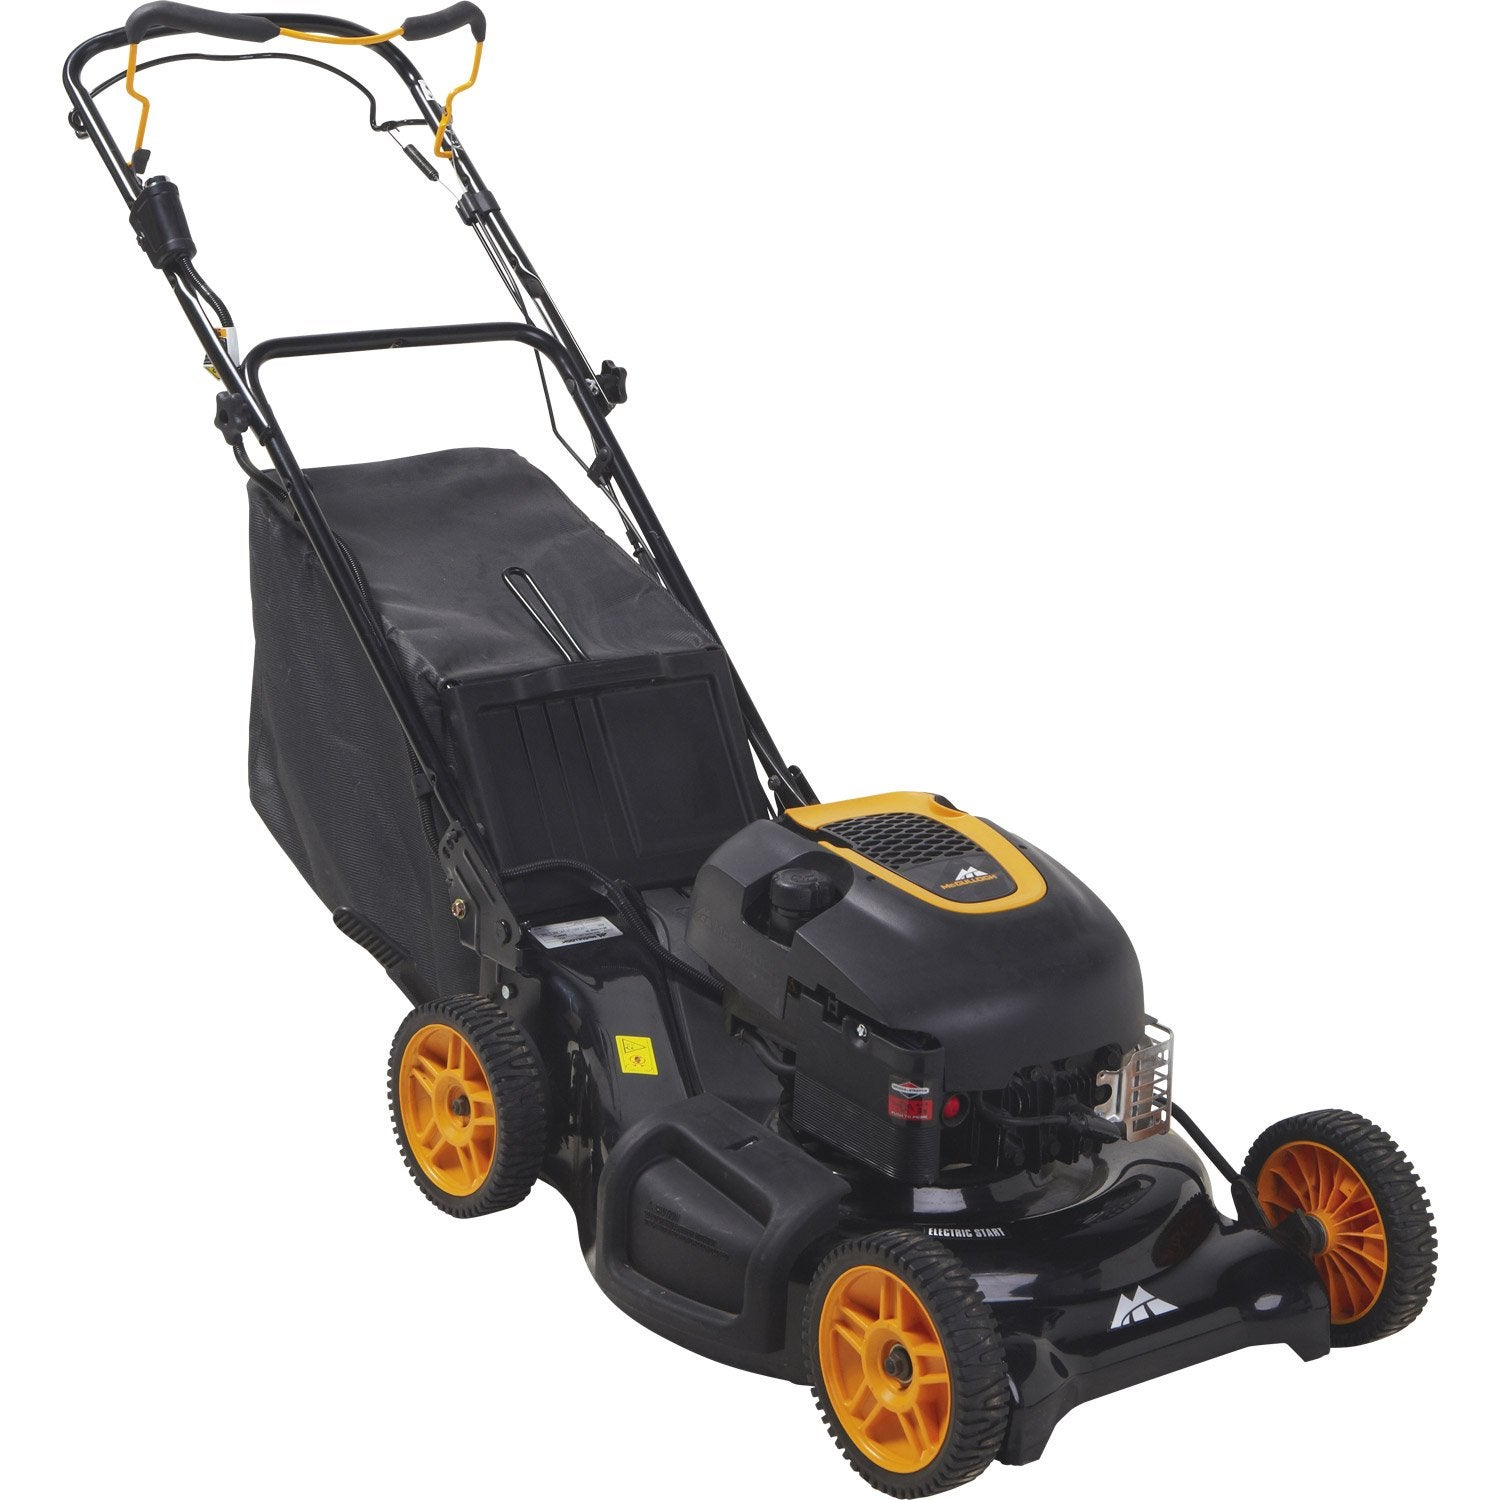 tondeuse thermique mc culloch m53 190 er 190 cm cm leroy merlin. Black Bedroom Furniture Sets. Home Design Ideas